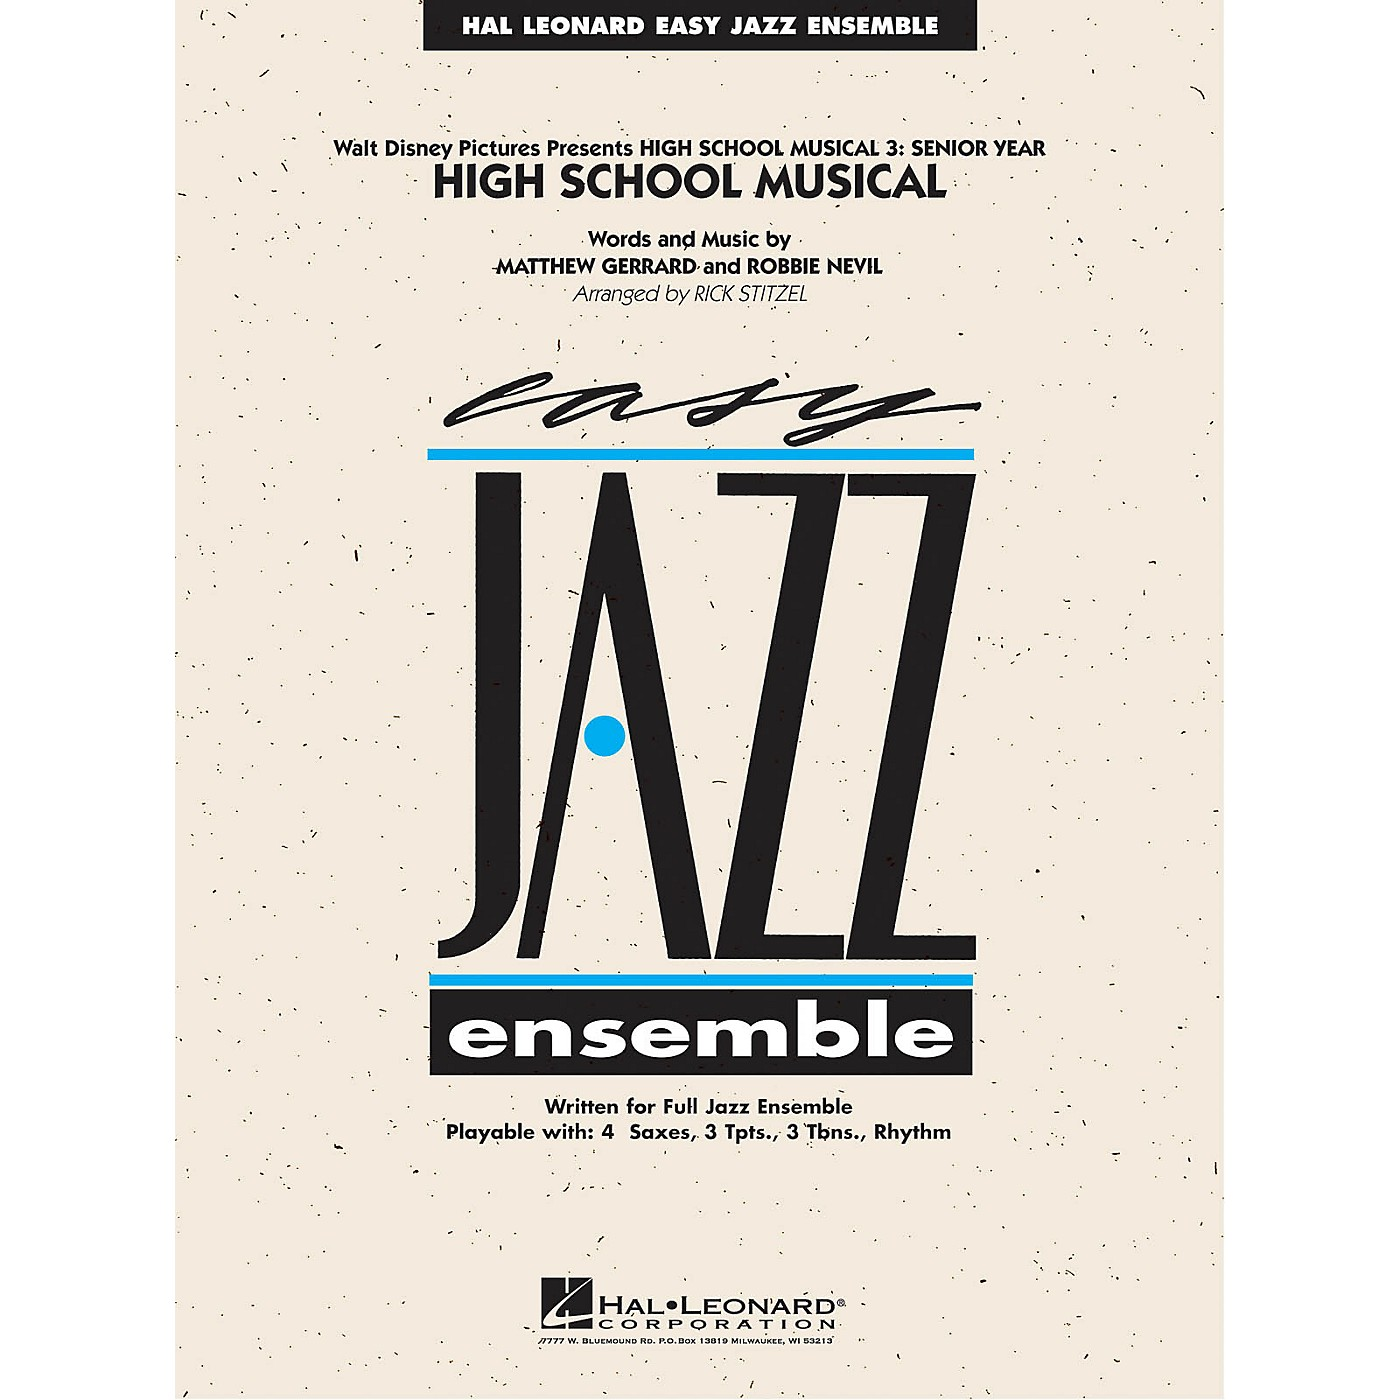 Hal Leonard High School Musical (from High School Musical 3: Senior Year) Jazz Band Level 2 Arranged by Rick Stitzel thumbnail